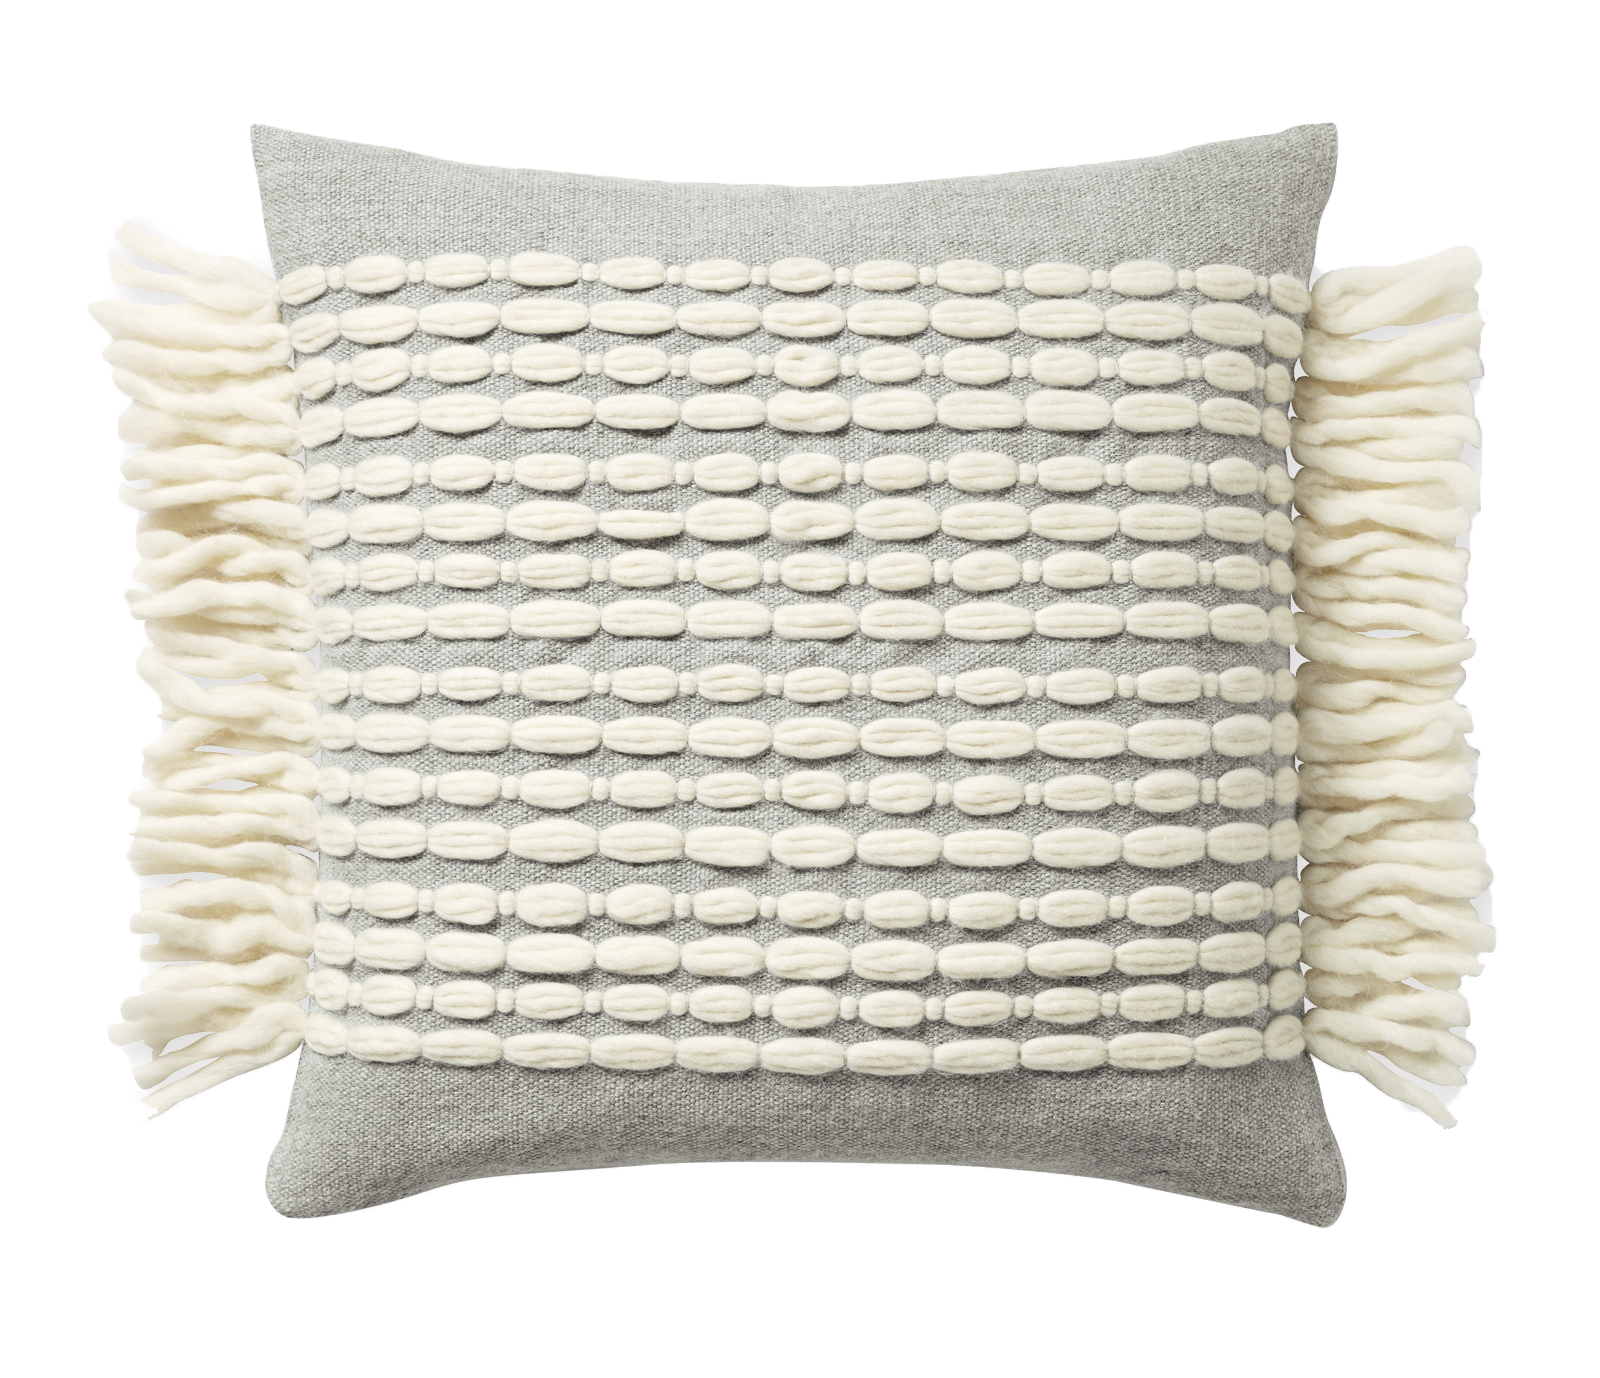 Dec_Pillow_Winter_Beach_20x20_Fog_Ivory_MV_Crop_SH copy.png